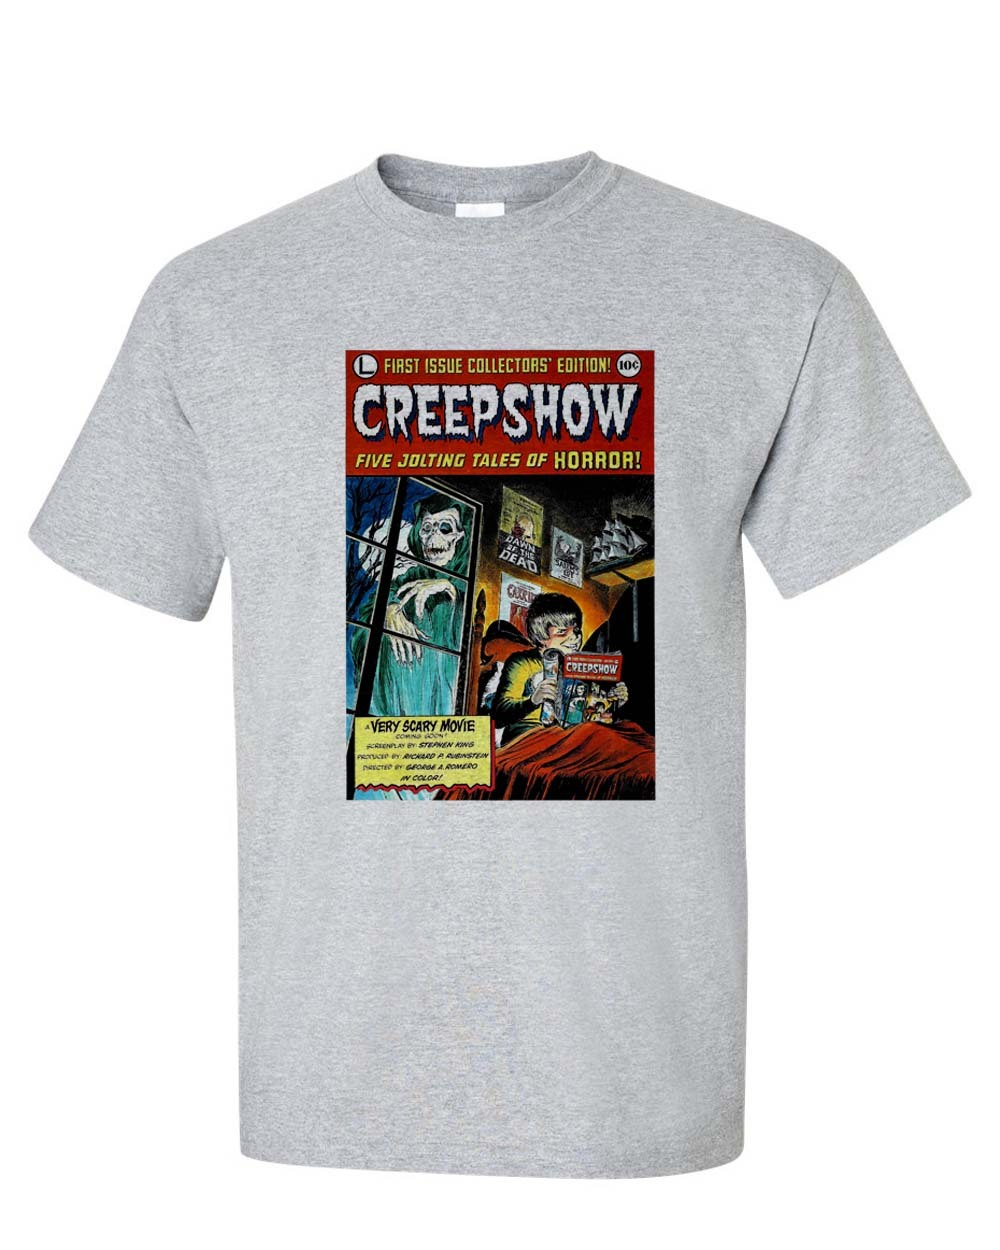 R movie film from 80 s stephen king george romero horror comics graphic tee for sale onlie store